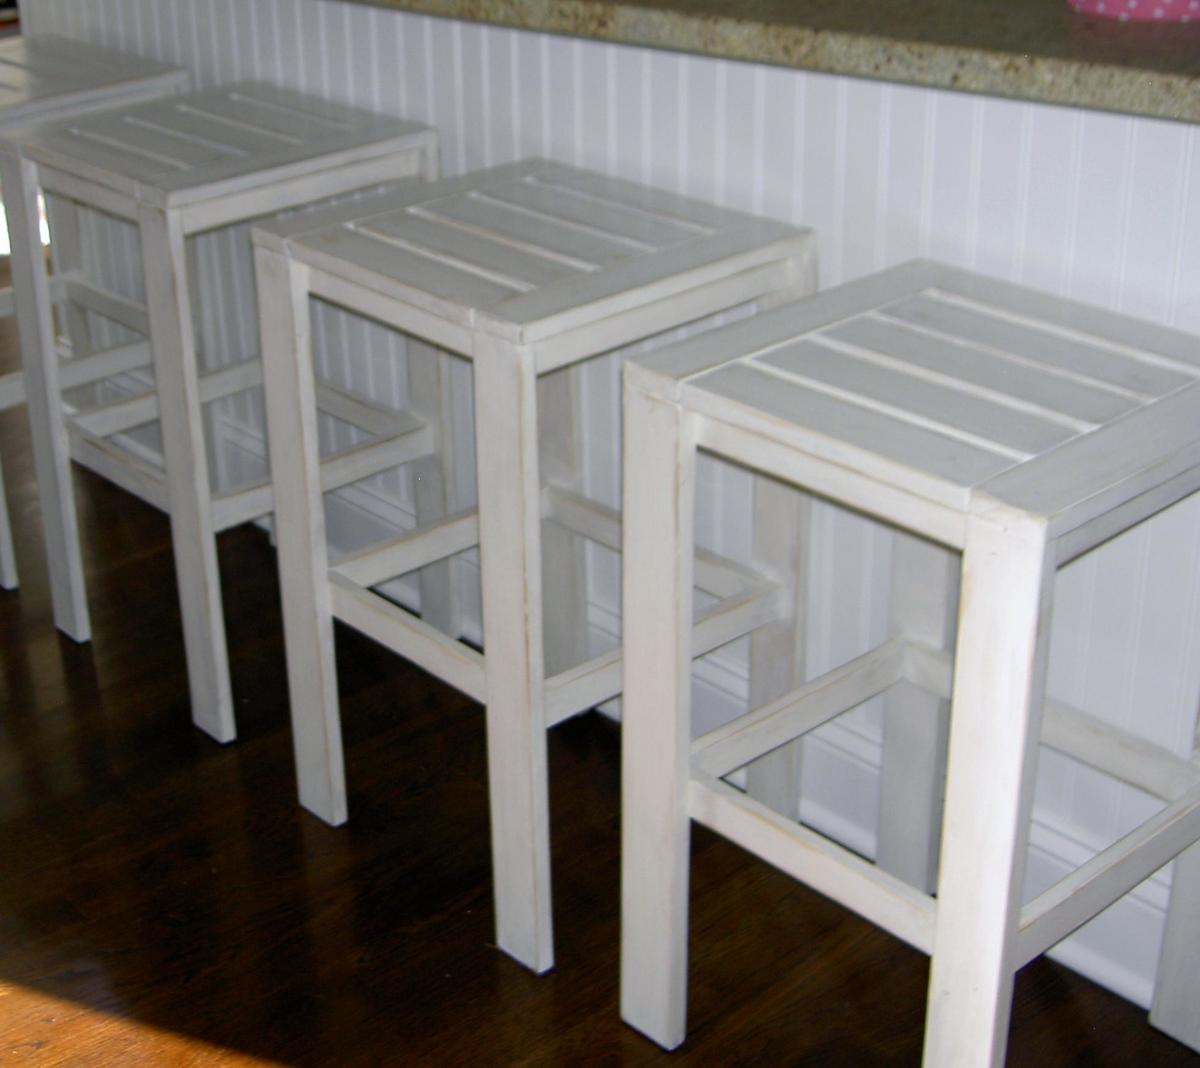 Ana White | Stools for the Bar Table for the Simple Outdoor Collection - DIY Projects : wooden white stool - islam-shia.org